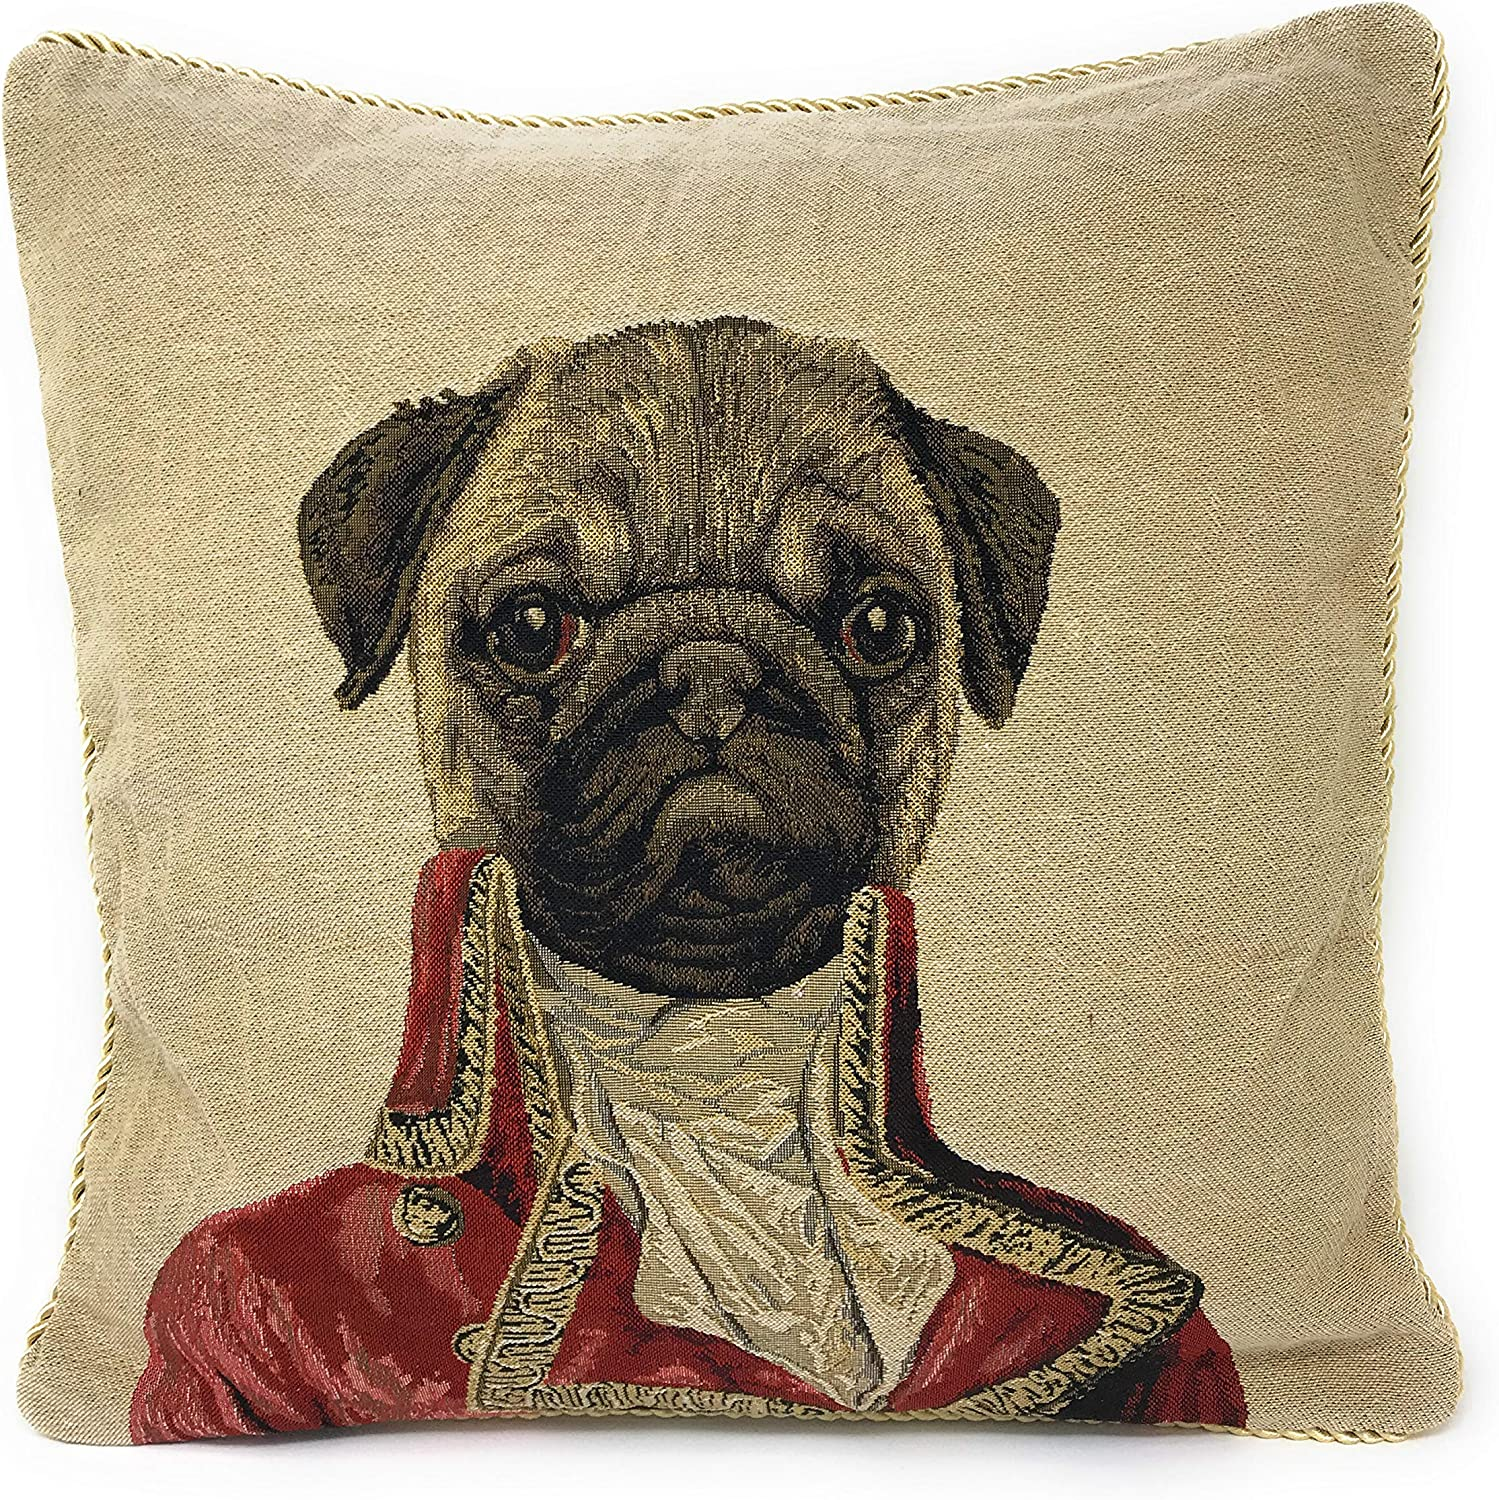 Tache 1 Piece 18 X 18 Inch Square French Vintage European Pug Dog Napoleon Bownparte Woven Tapestry Cushion Pillow Throw Cover Home Kitchen